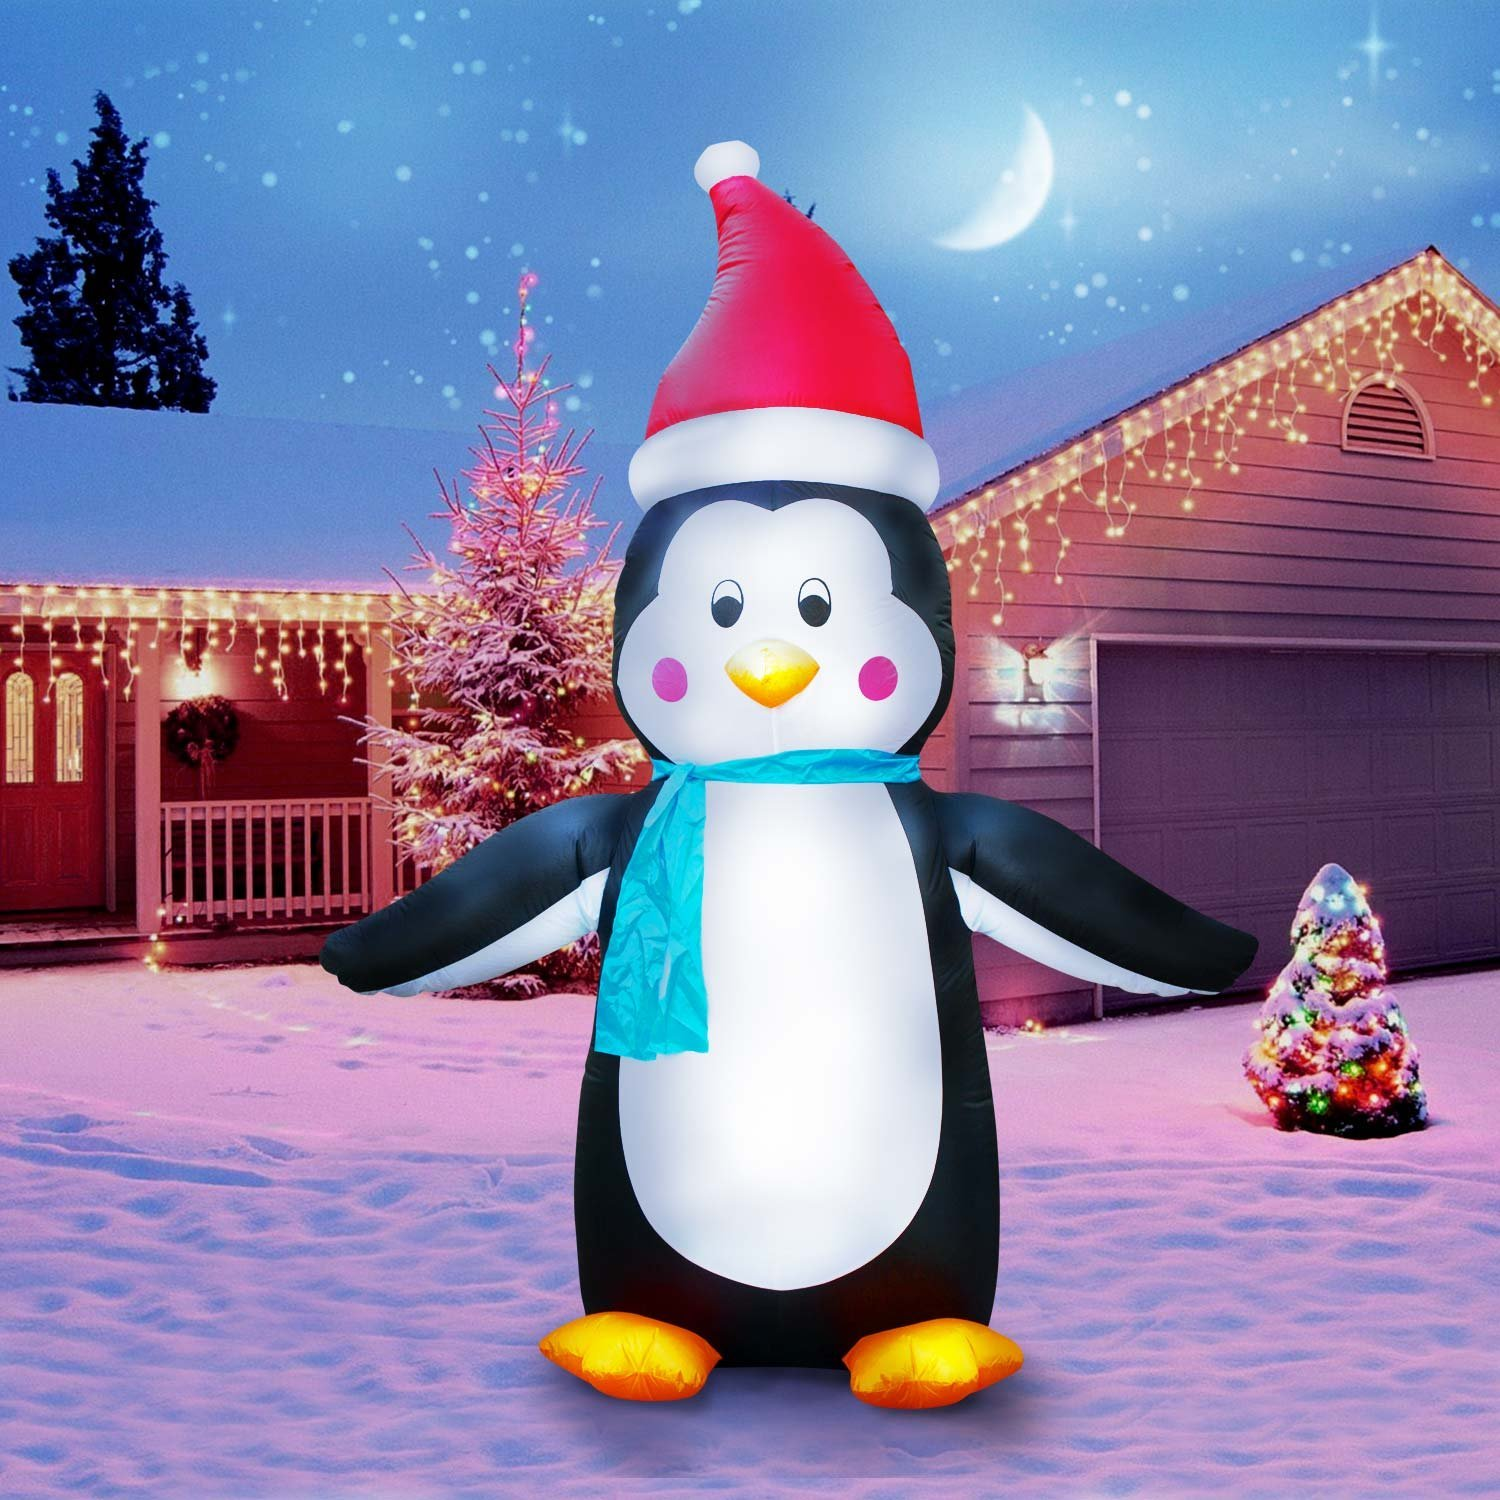 710 tall lawn christmas decorations holidayana penguin christmas decorations for outside - Christmas Decorations Cheap Outdoor